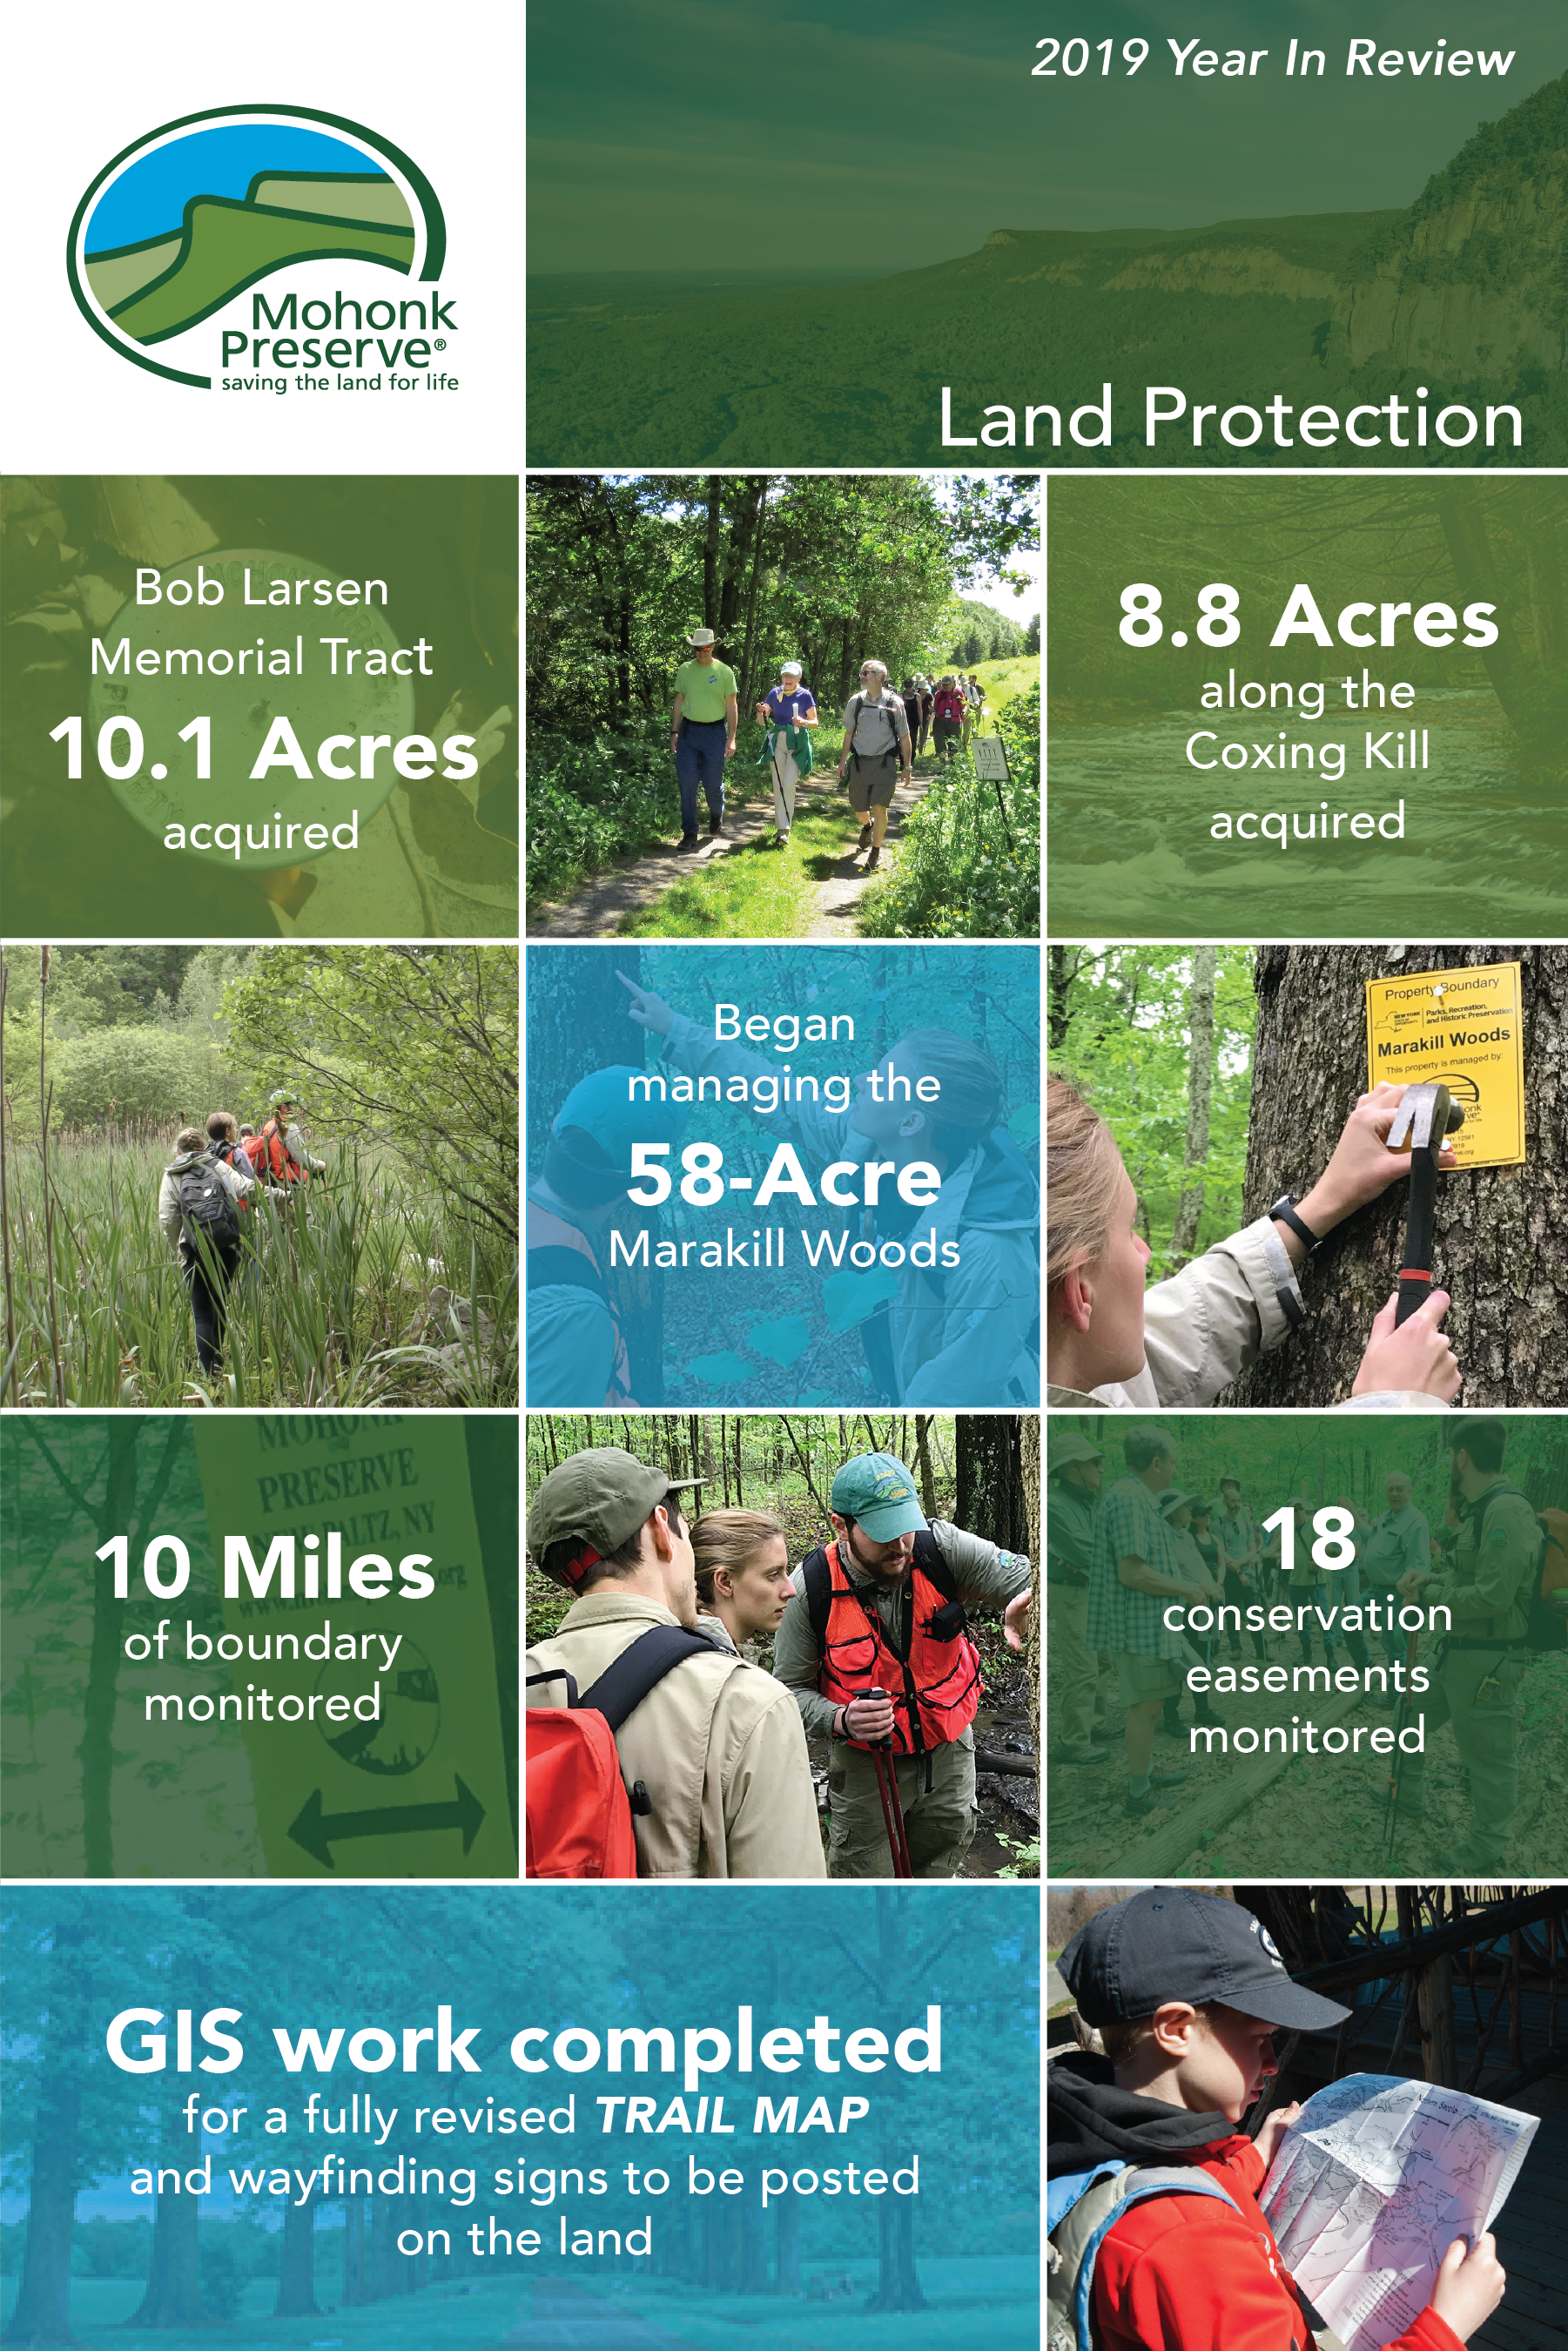 2019 Year In review: Land Protection. Bob Larsen Memorial Tract 10.1 Acres aquired, 8.8 Acres along the Coxing Kill acquired, Began managing the 58-Acre Marakill Woods, 10 Miles of boundary monitored, 18 conservation easements monitored, GIS work completed for a fully revised Trail Map and wayfinding signs to be posted on the land